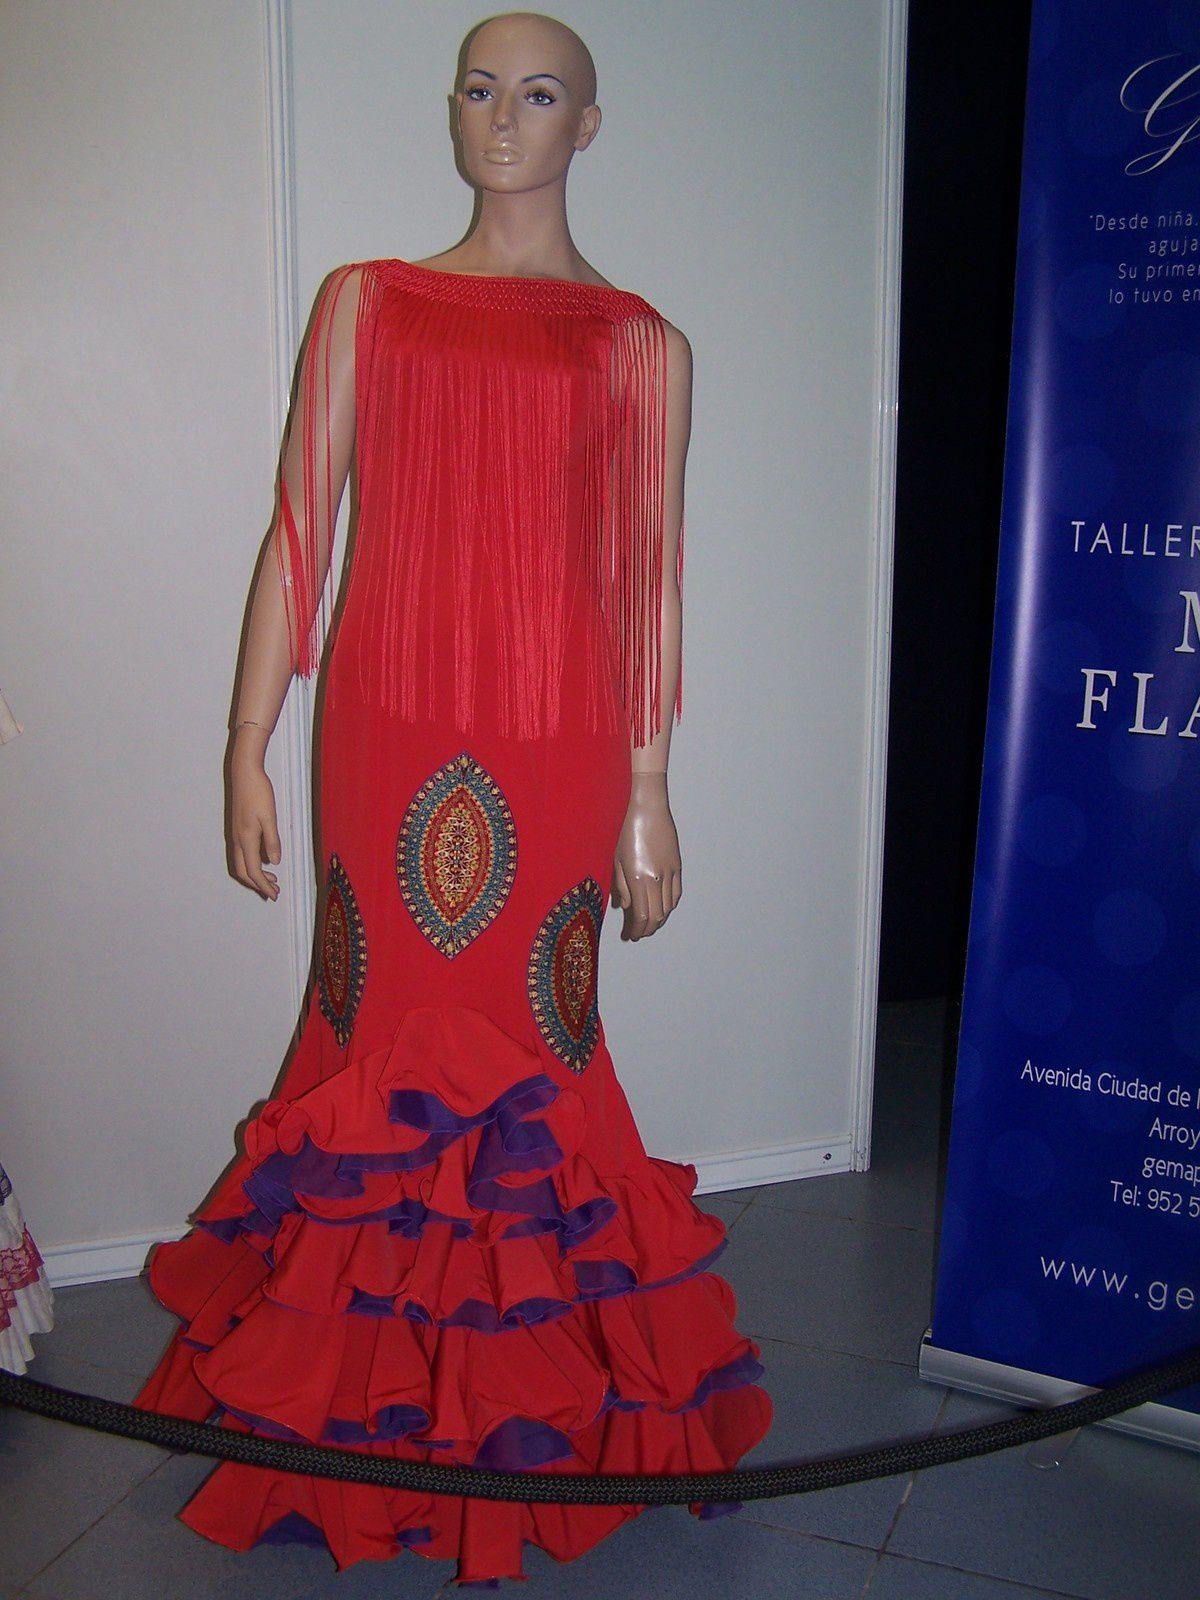 Expo Sitges (7)